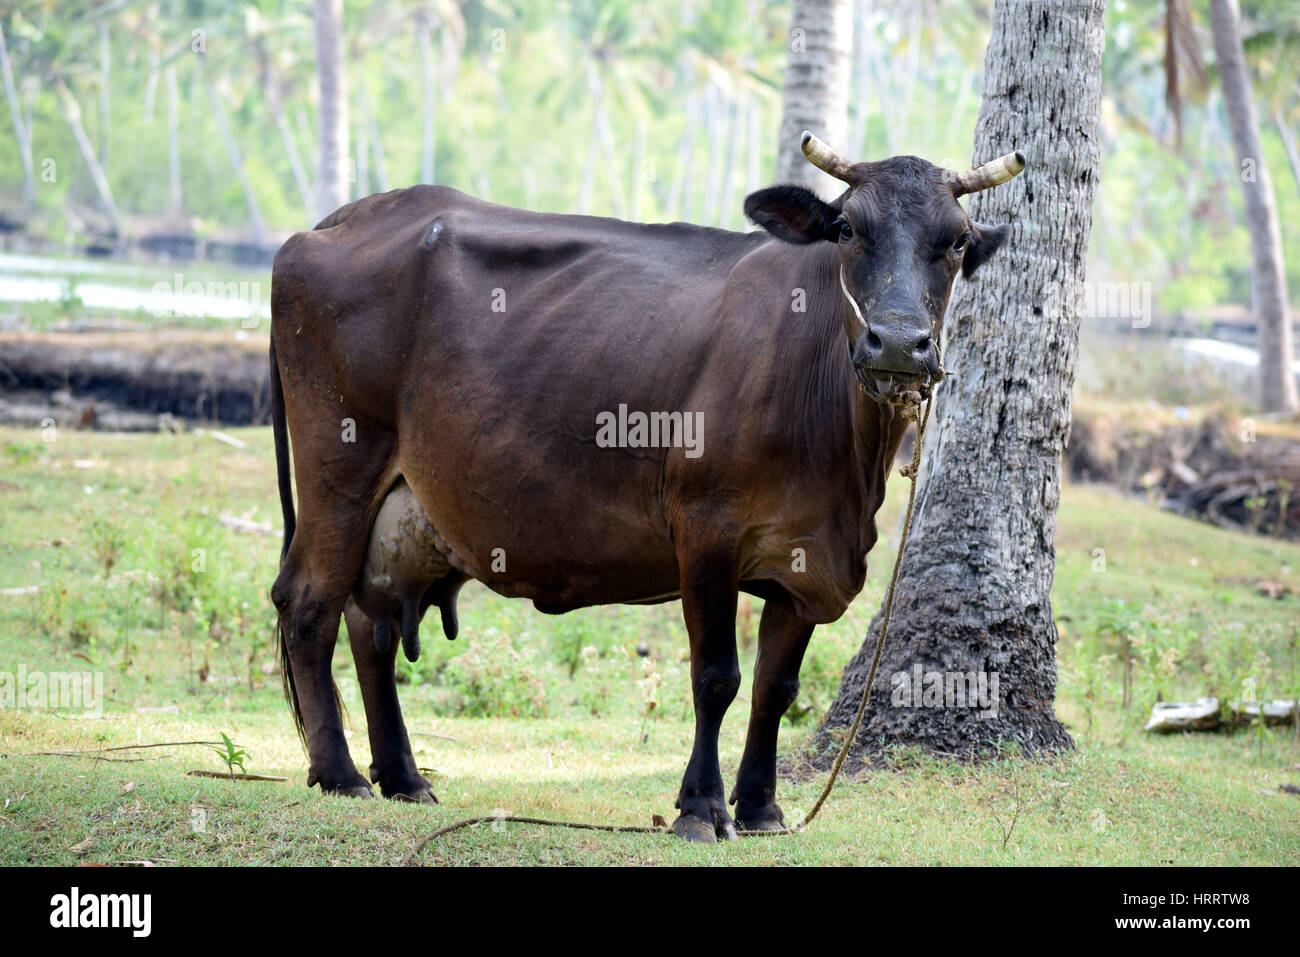 Indian cows which are breed and has high A2 milk production Stock Photo